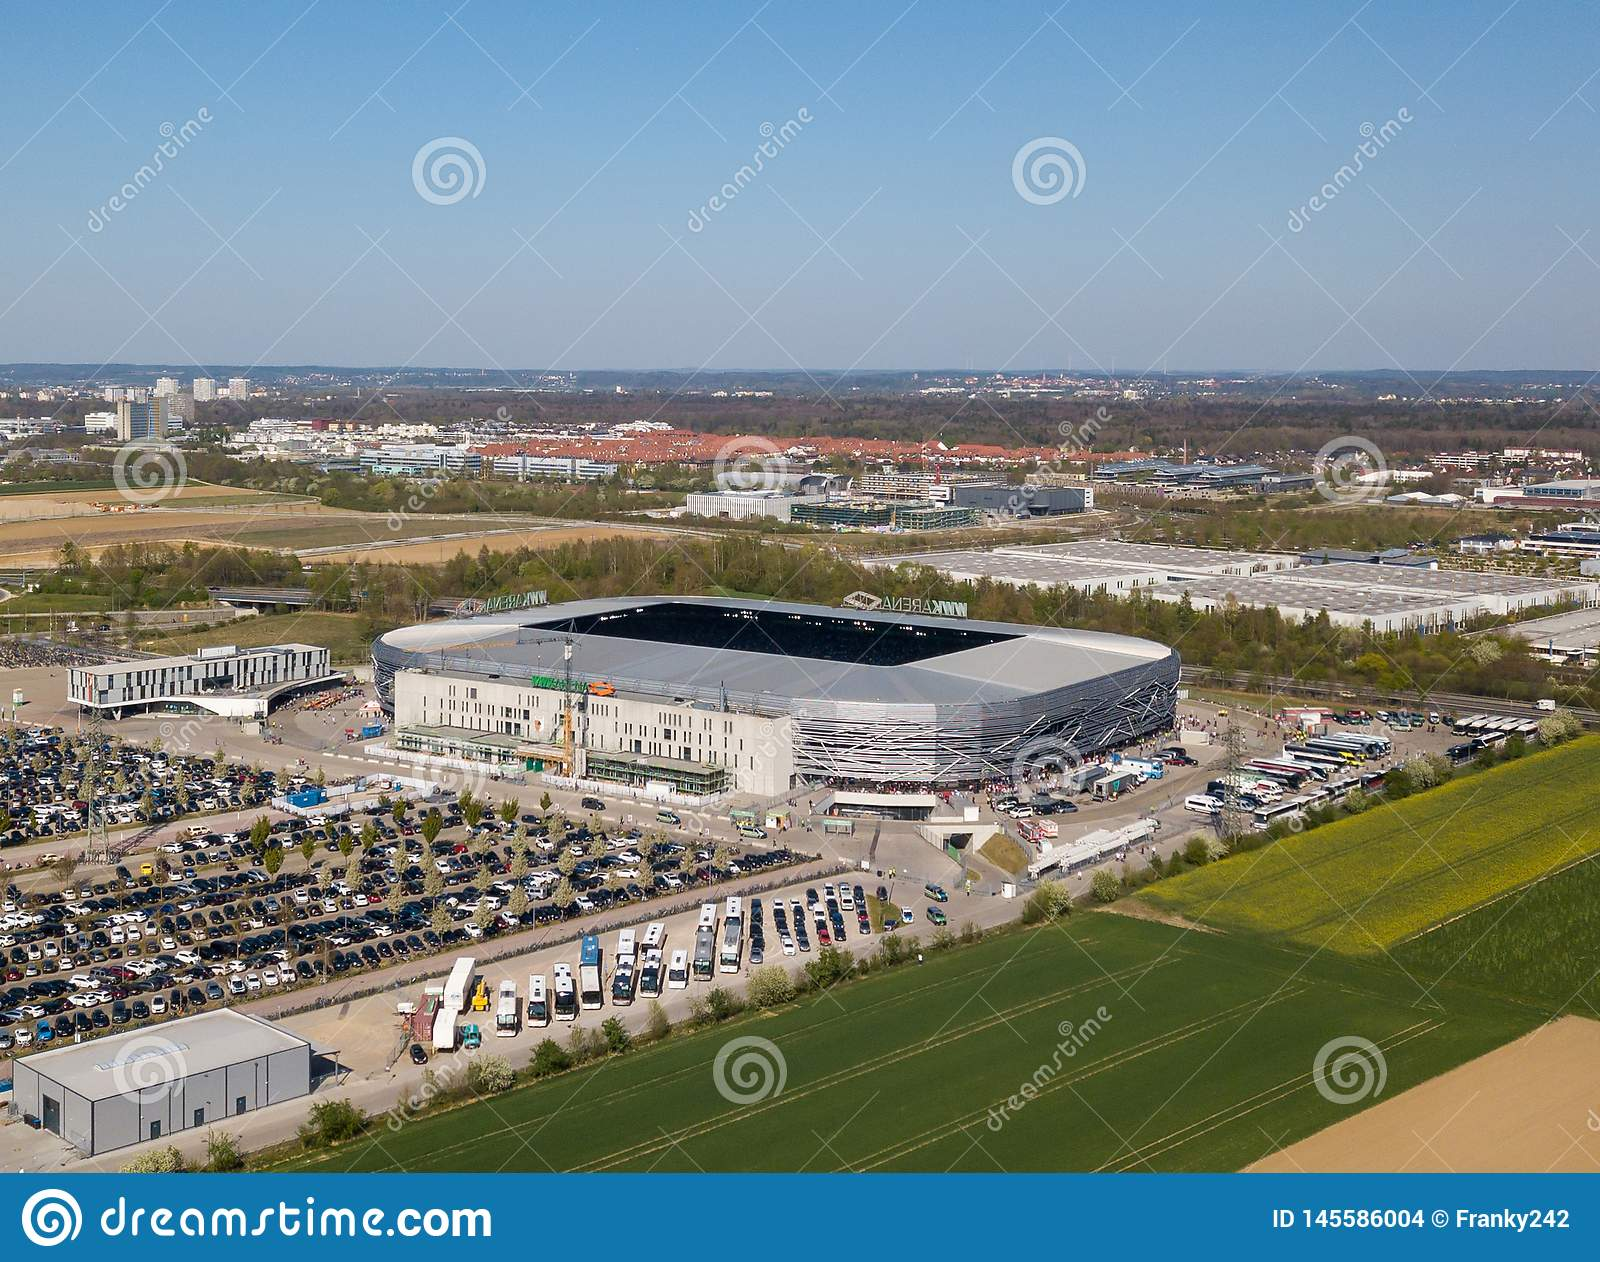 WWK arena - the official football stadium of FC Augsburg